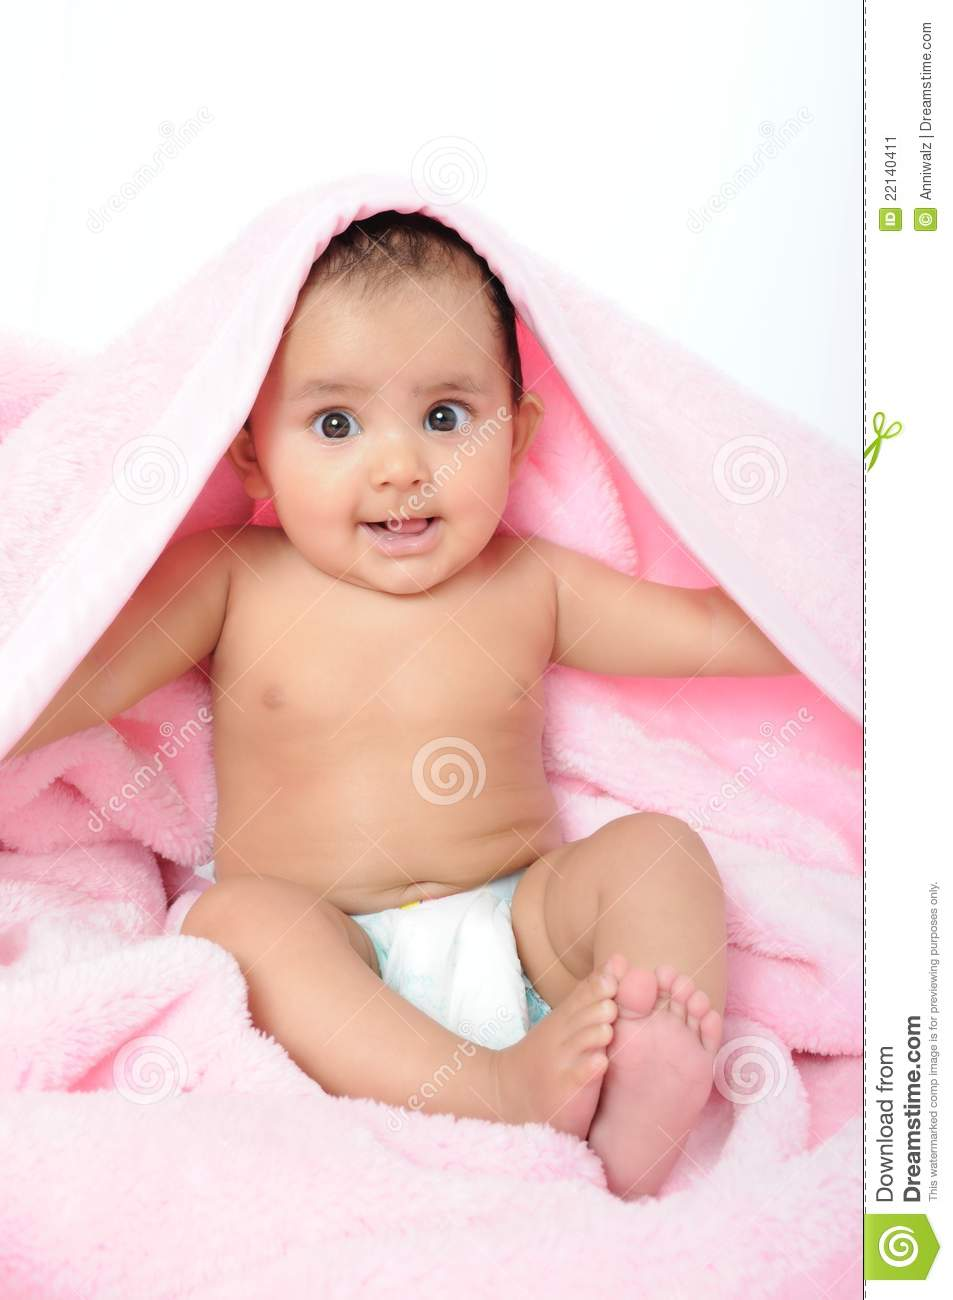 Sweet Small Girl Hd Wallpaper Cute Indian Baby Kid Sitting With A Blanket Stock Image